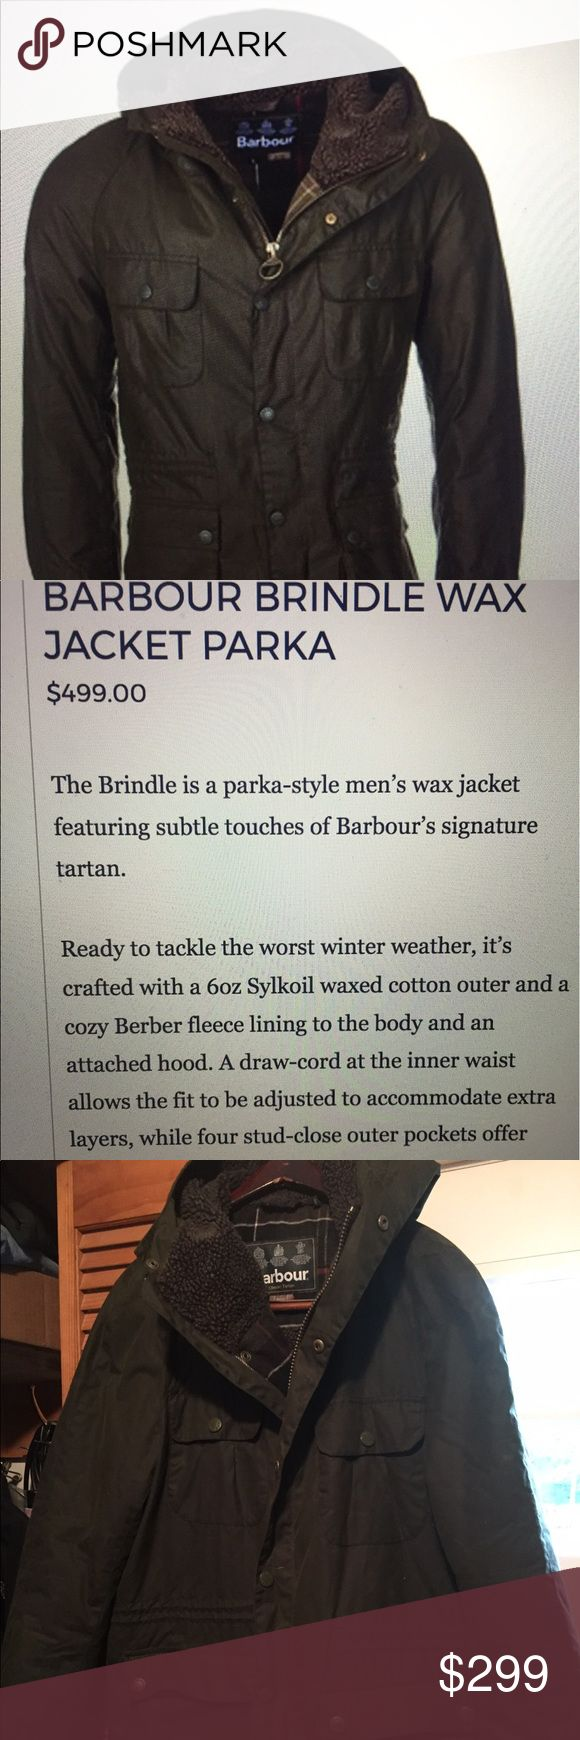 Barbour brindle wax parka jacket Men's size L Authentic Barbour brindle wax parka jacket Men's size L, retails $499, waxed cotton field jacket with fleece lining with tartan plaid accents. Two front snap pockets with front zip and snap button closure, hood lined with fleece Barbour Jackets & Coats Military & Field